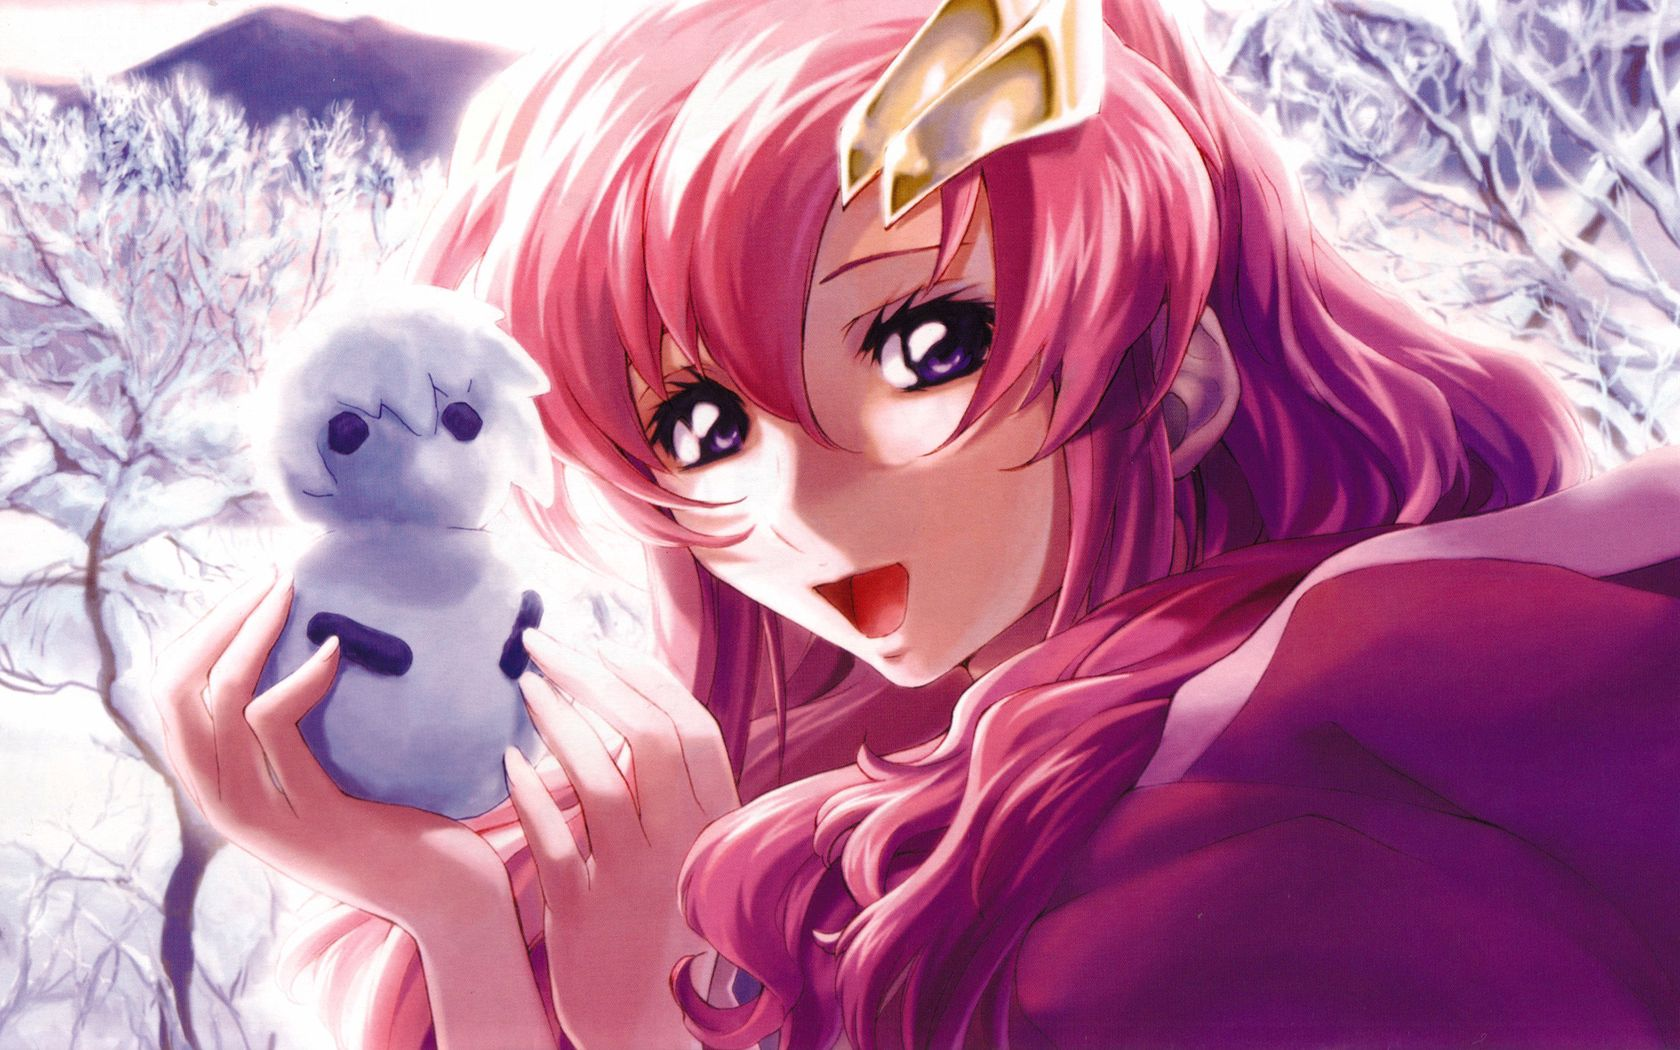 87097 download wallpaper Anime, Girl, Pretty, Smile, Being, Creature screensavers and pictures for free